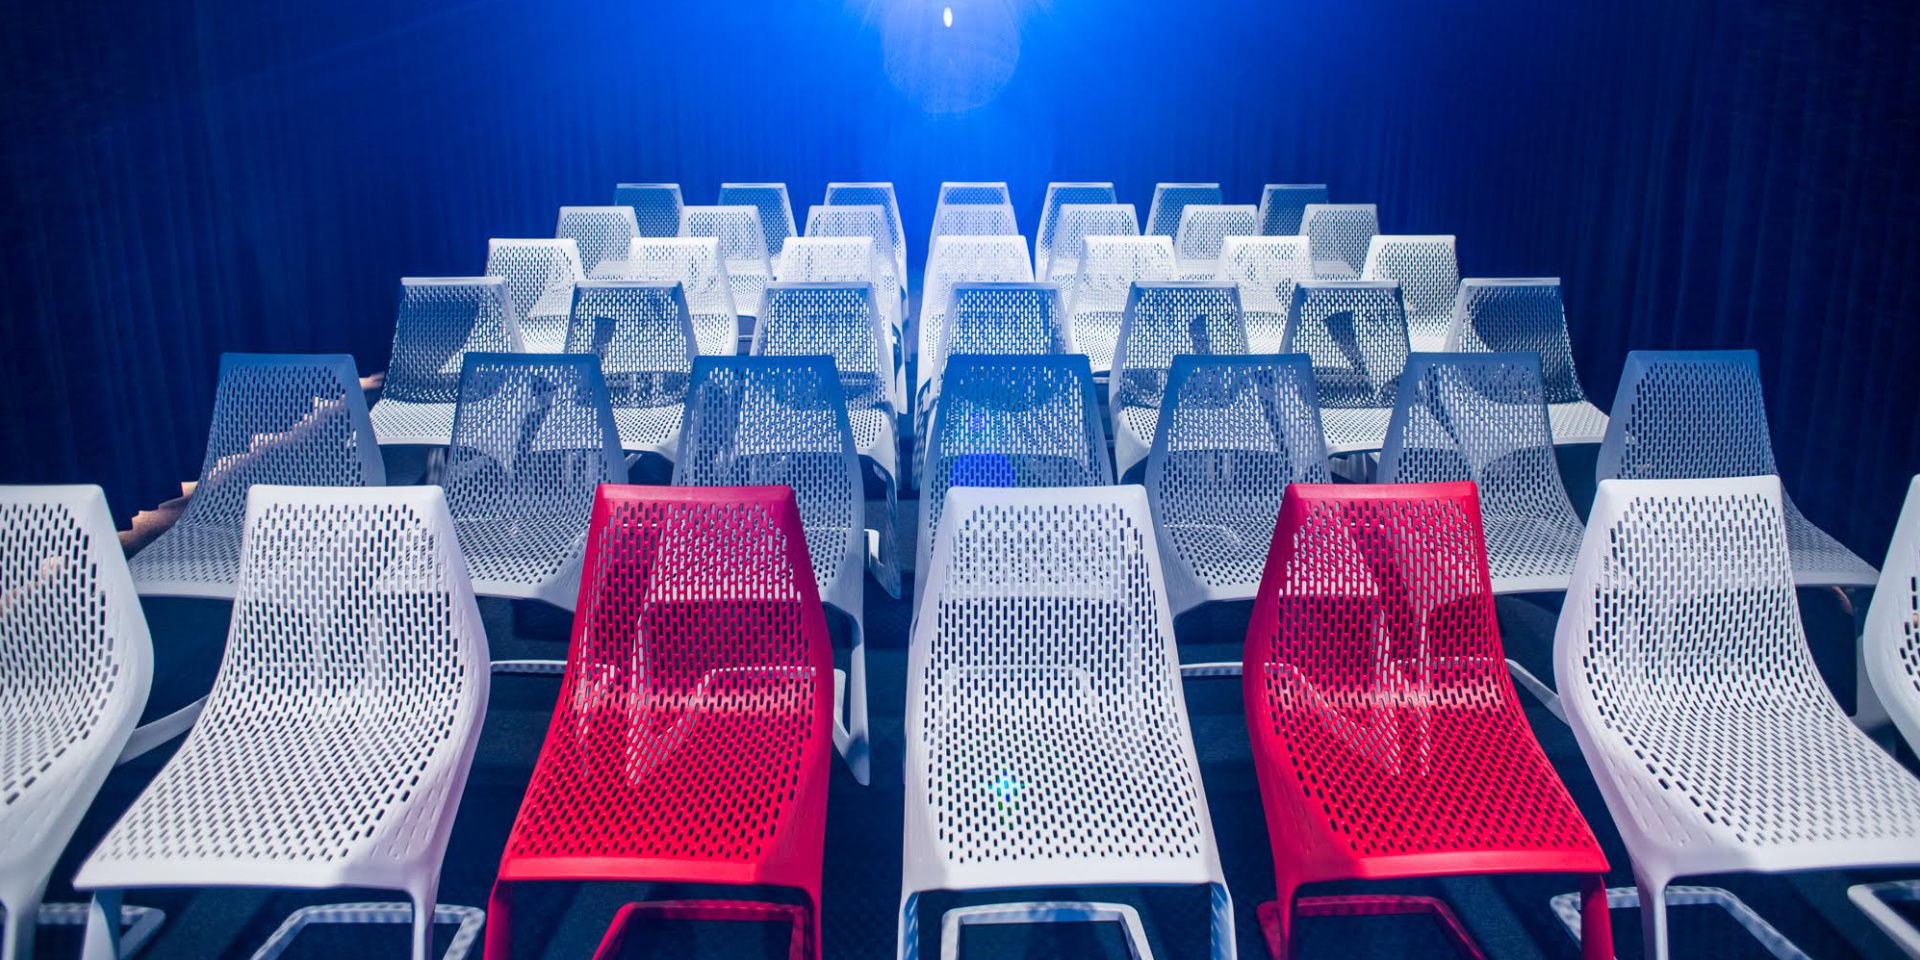 MYTO chair, design Konstantin Grcic, at Vilnius Airport Movie Theatre Film Box LT.